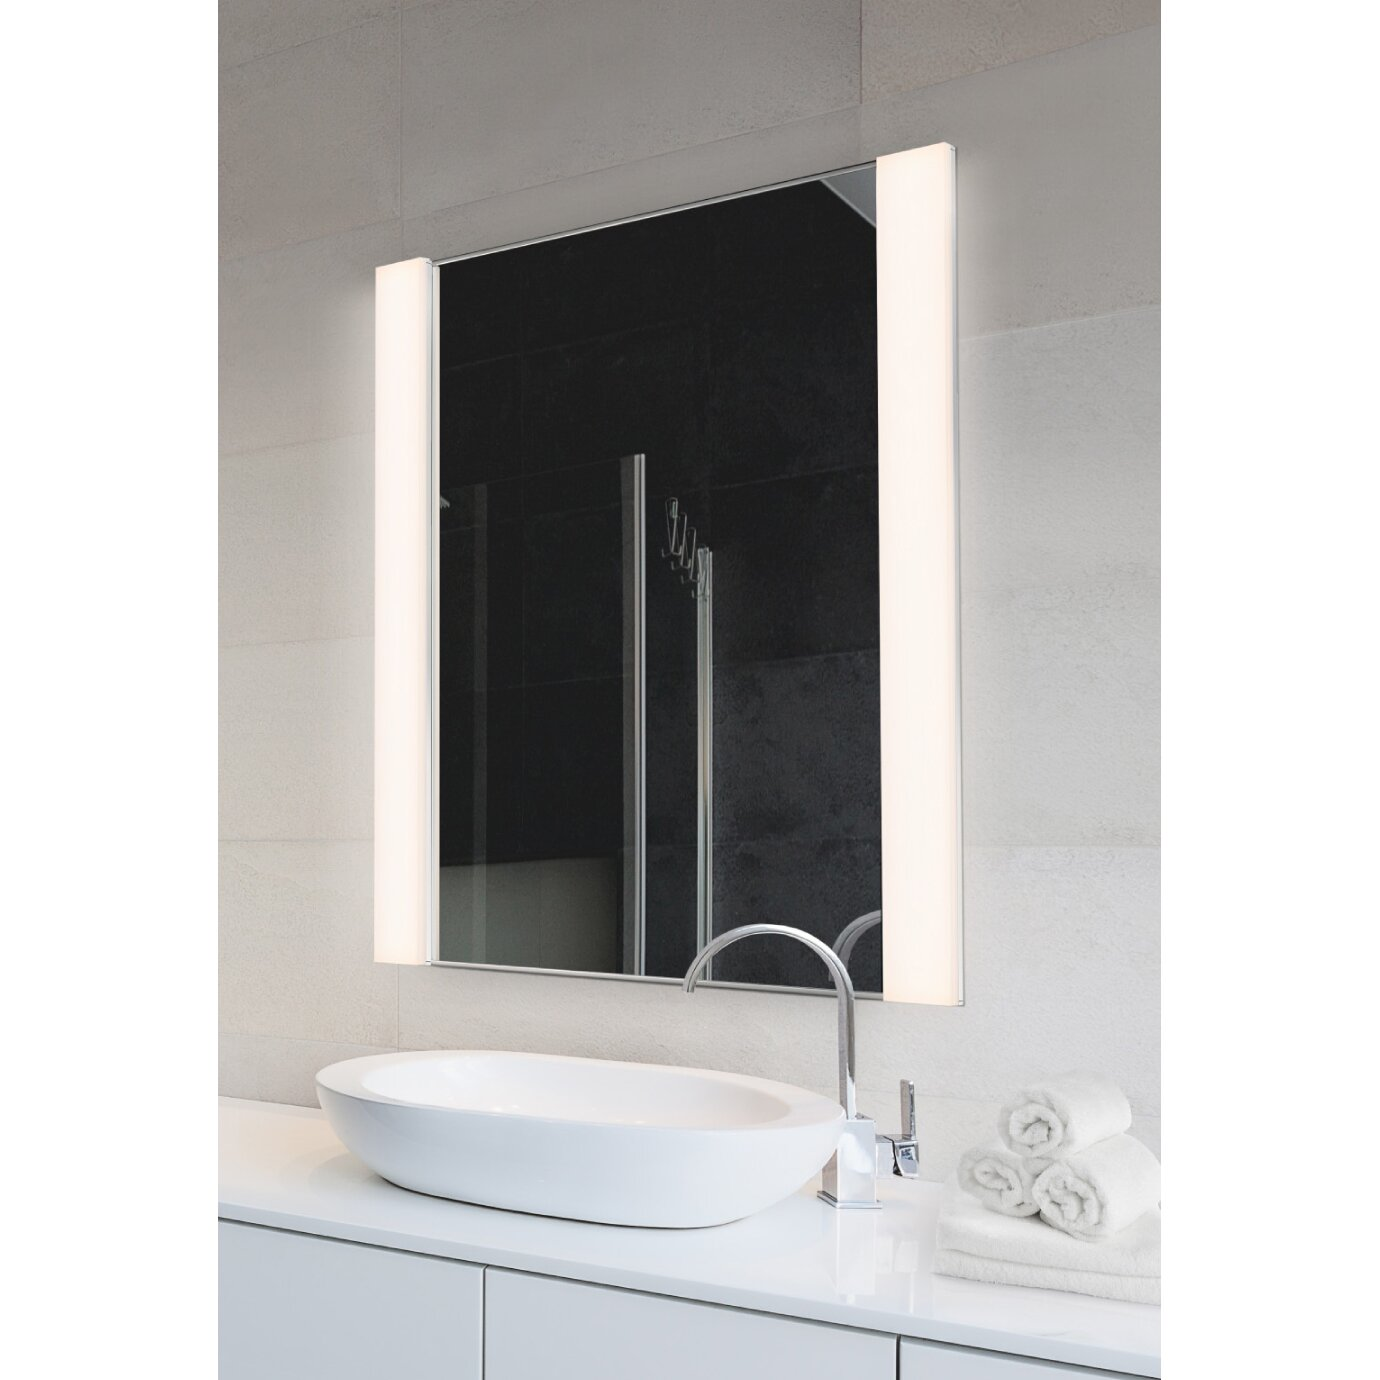 Vanity Lighting Vertical : LED Vertical 2 Light Vanity Light with Mirror Wayfair